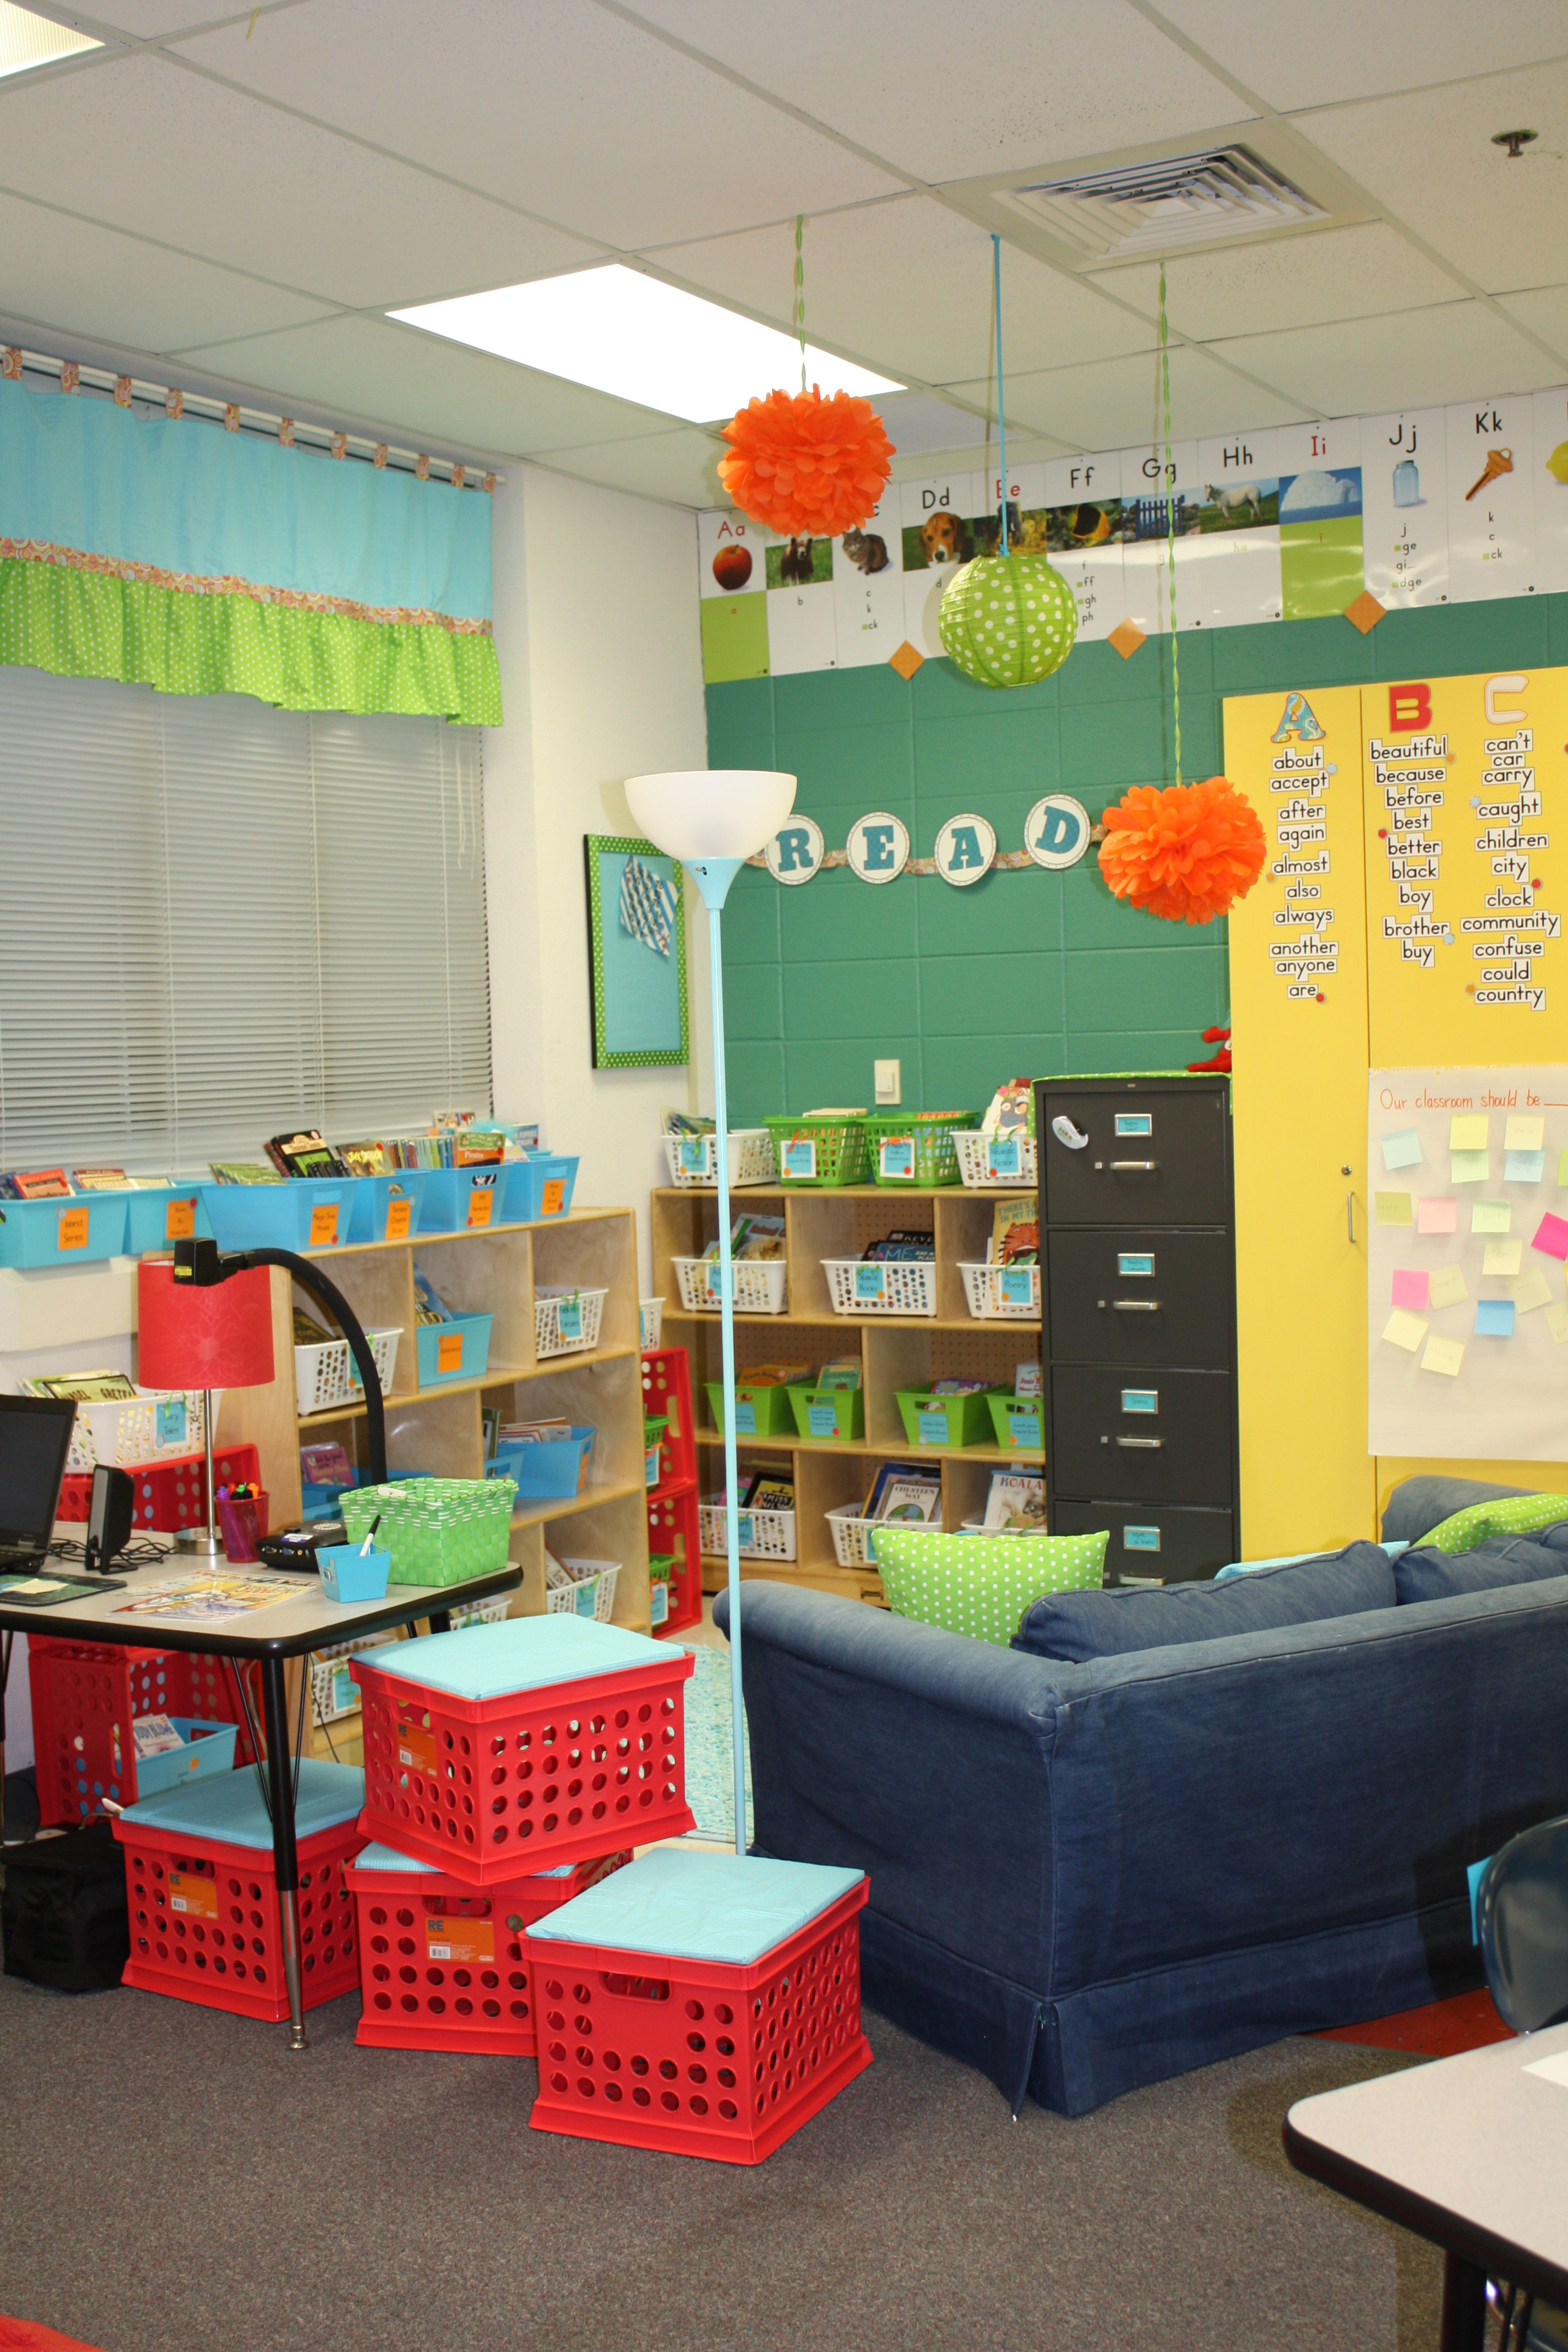 2nd Grade Classroom Design Ideas ~ Second grade classroom lots of cute ideas for decorating